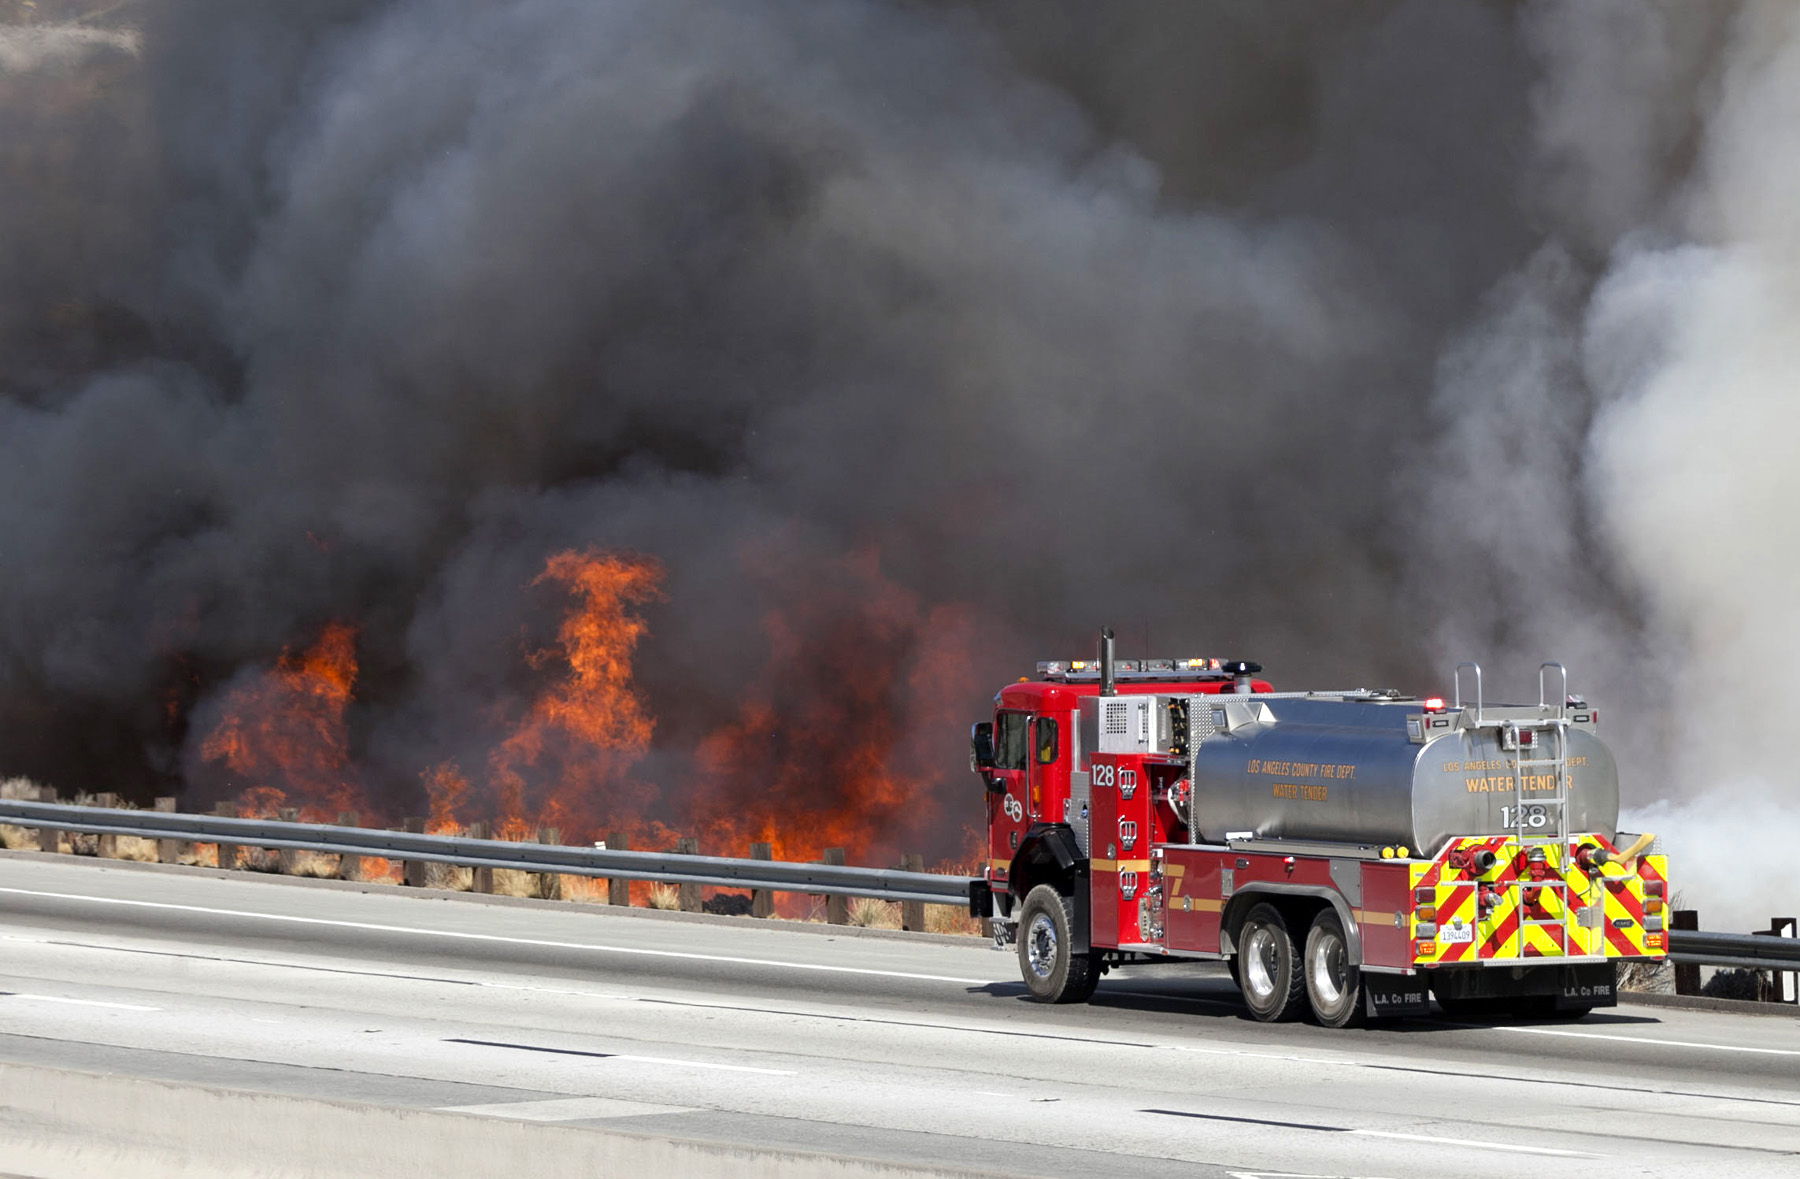 LA Now California wildfire updates Fastmoving fire in Santa Cruz mountains threatens structures